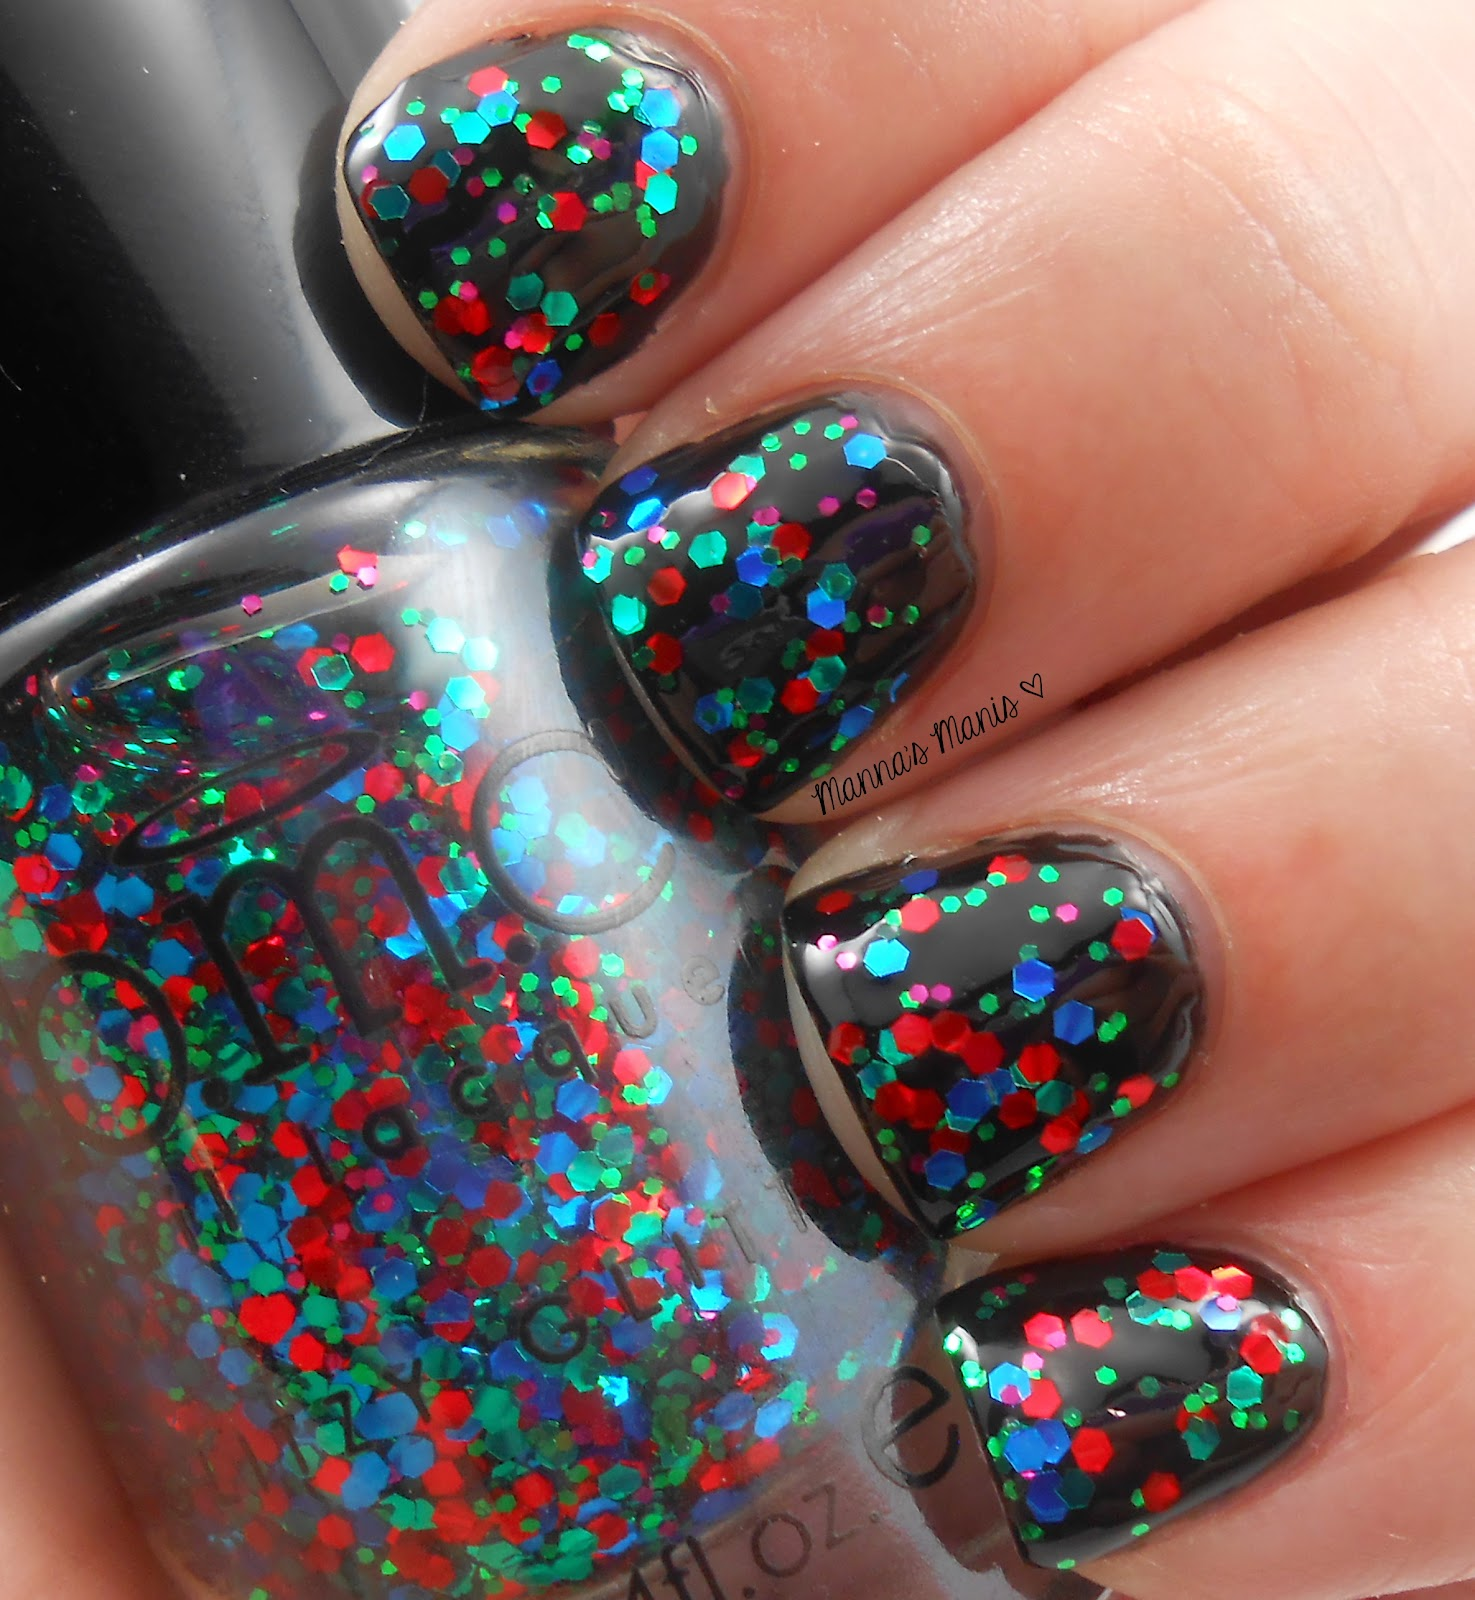 BMC girls night out, a multicolored glitter nail polish